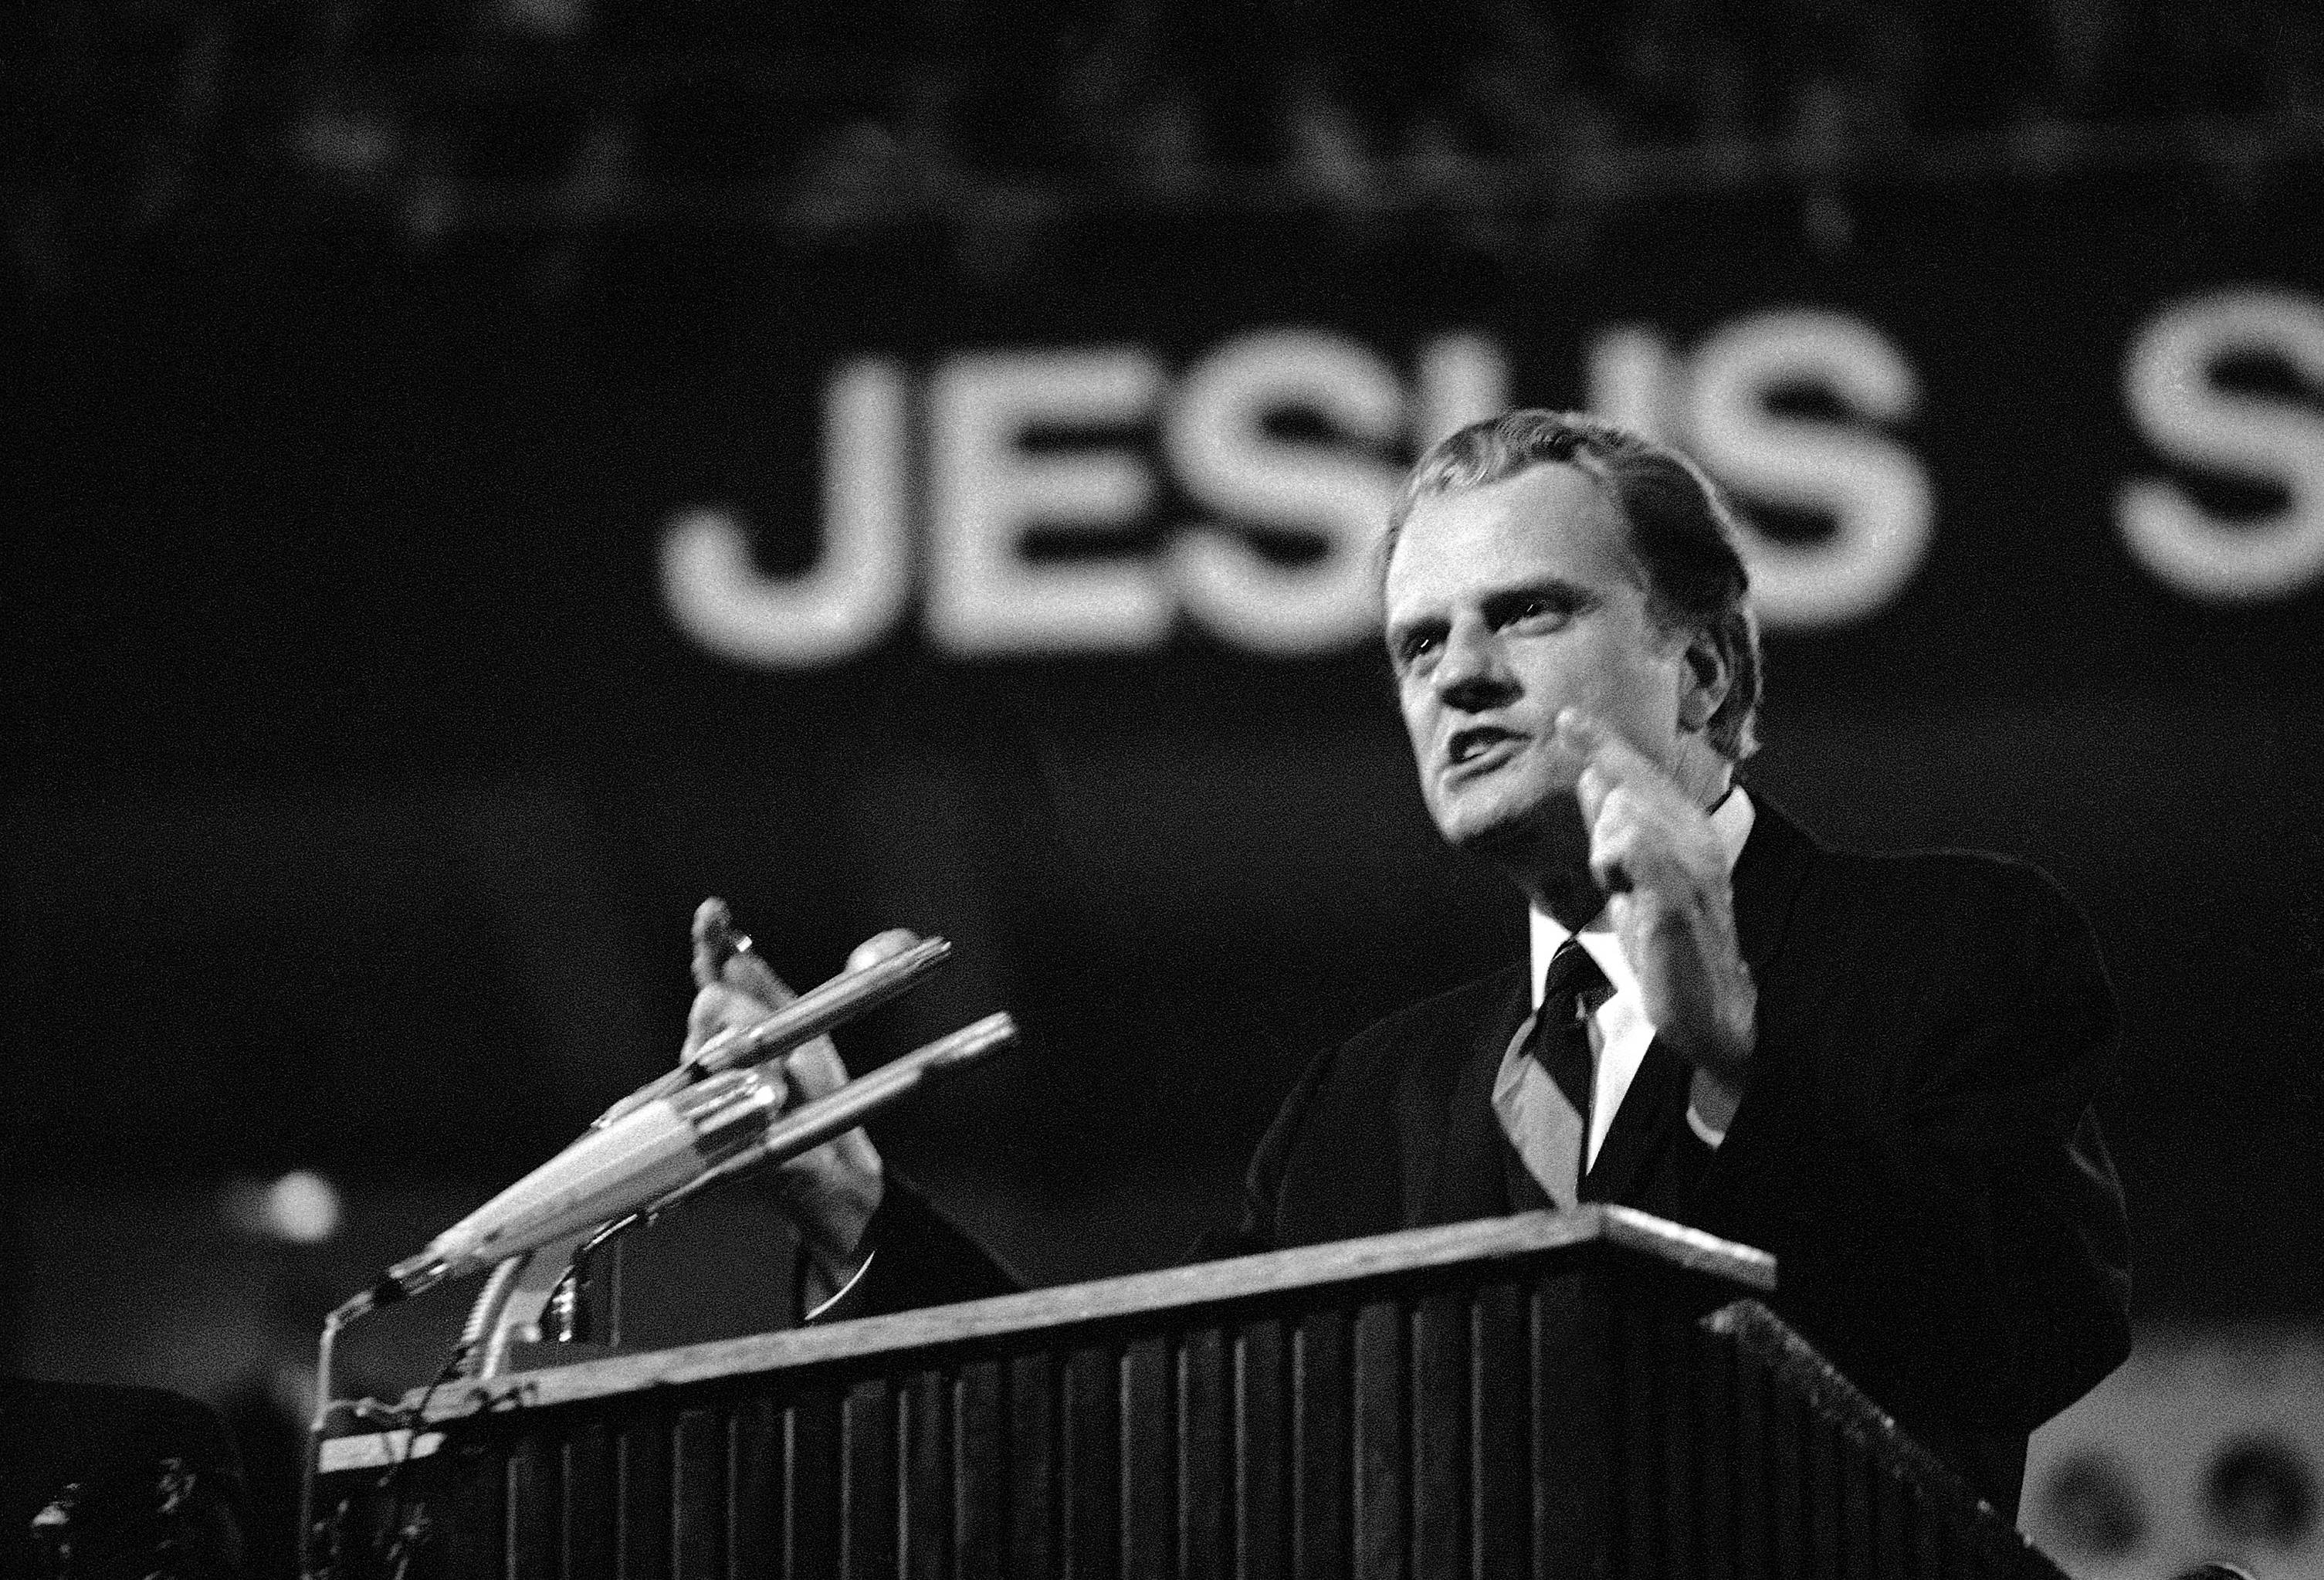 Images: Rev. Billy Graham, 1918 - 2018